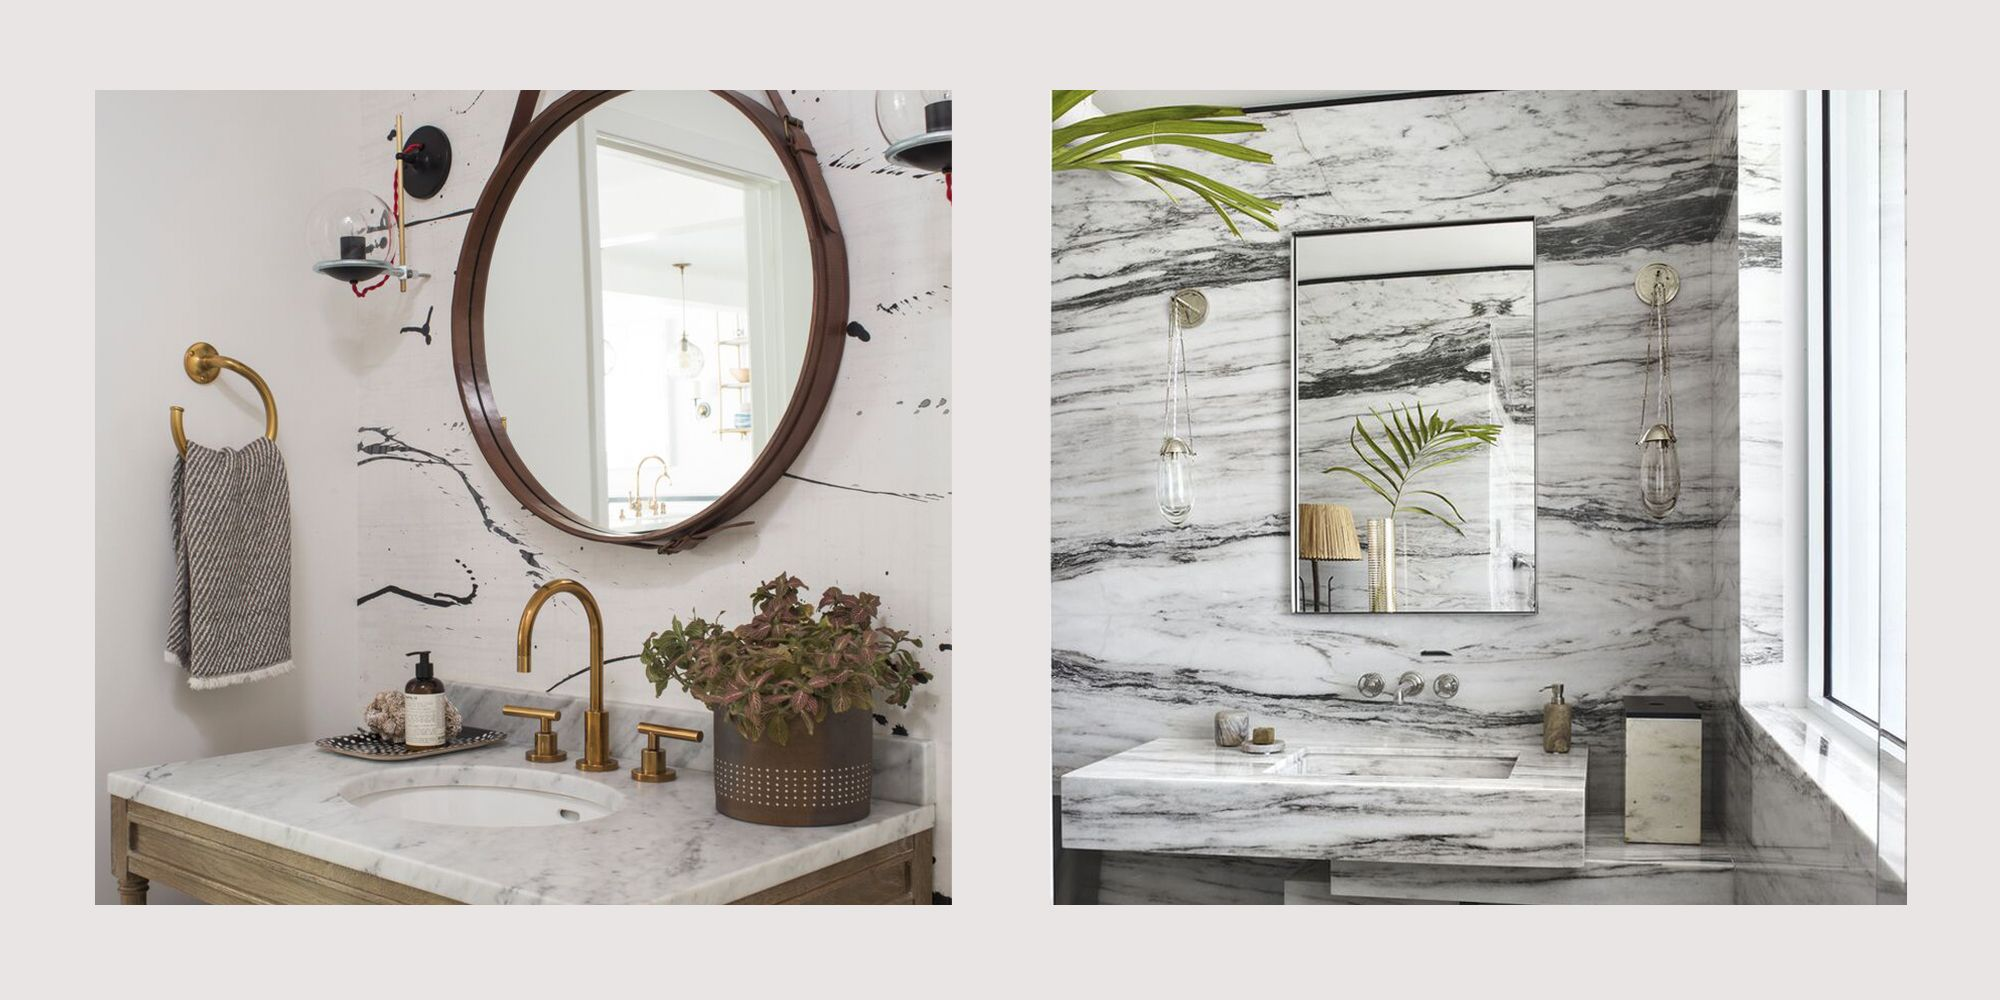 Bathroom Tiles Designs 2019: What Bathroom Styles Are In